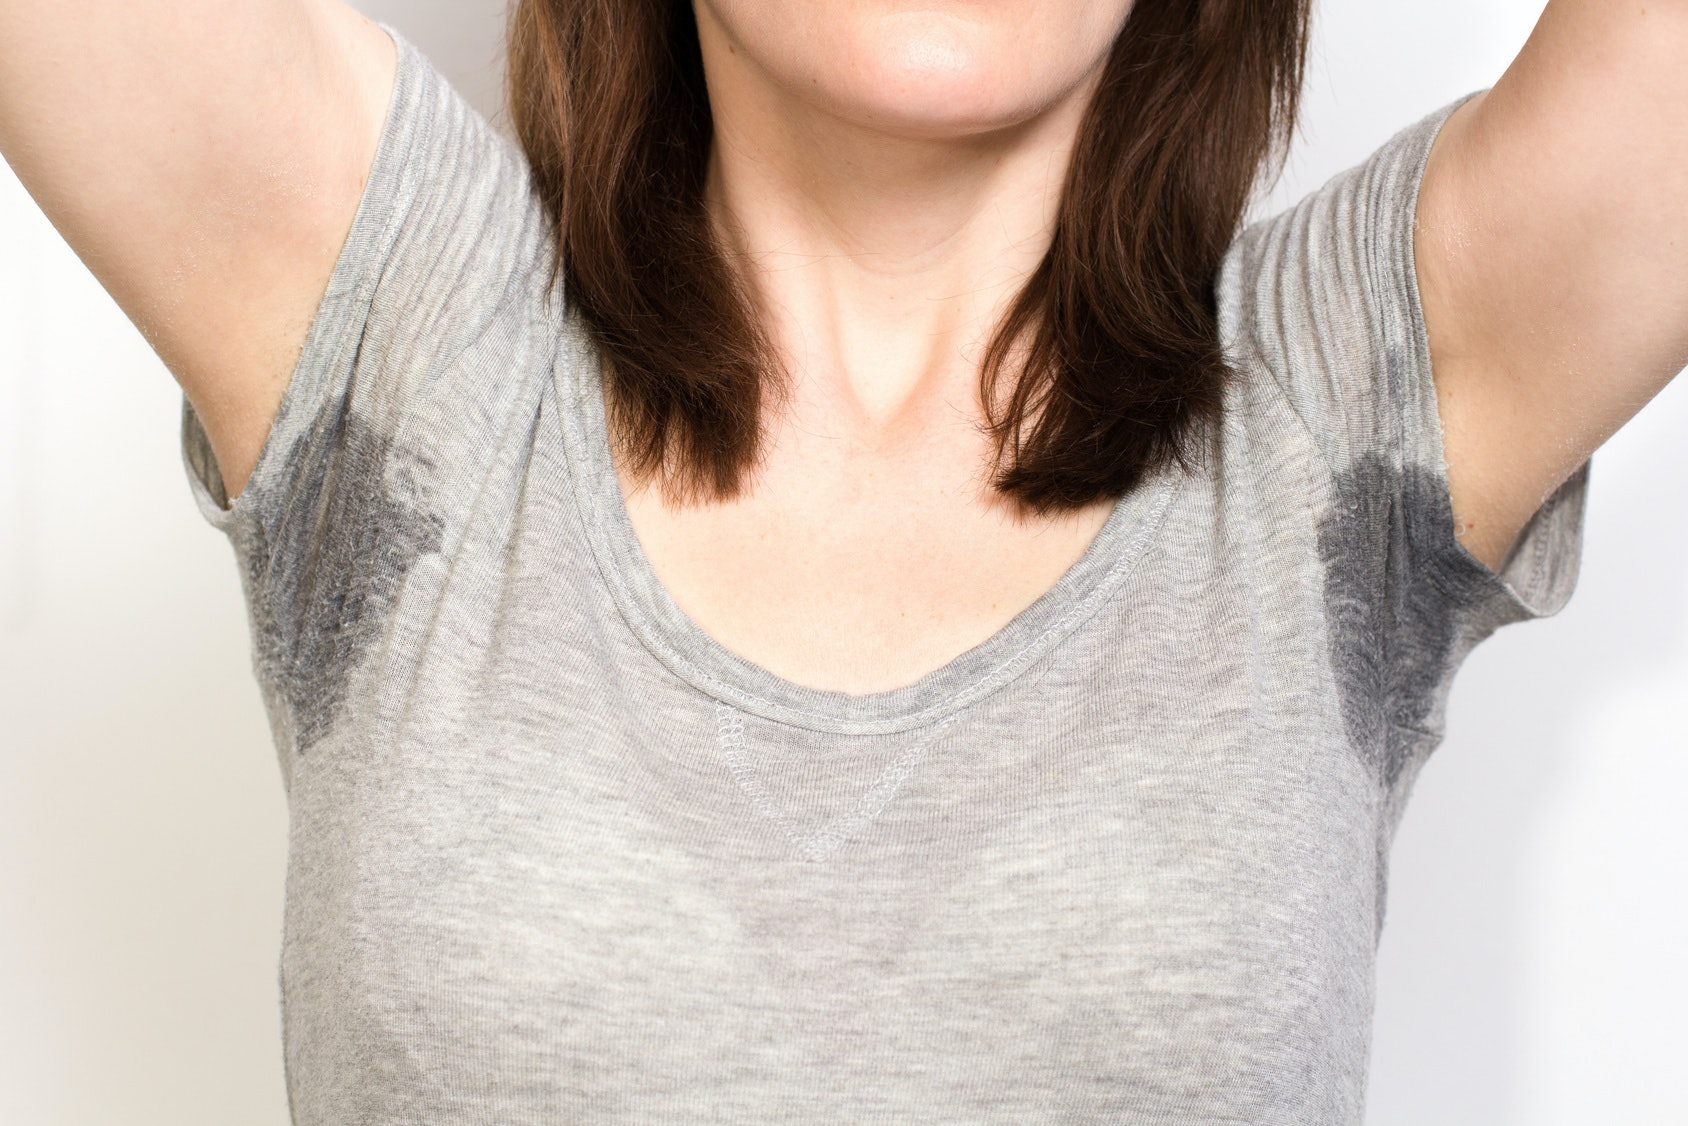 7 Ways To Avoid Pit Stains & Keep Sweat At Bay